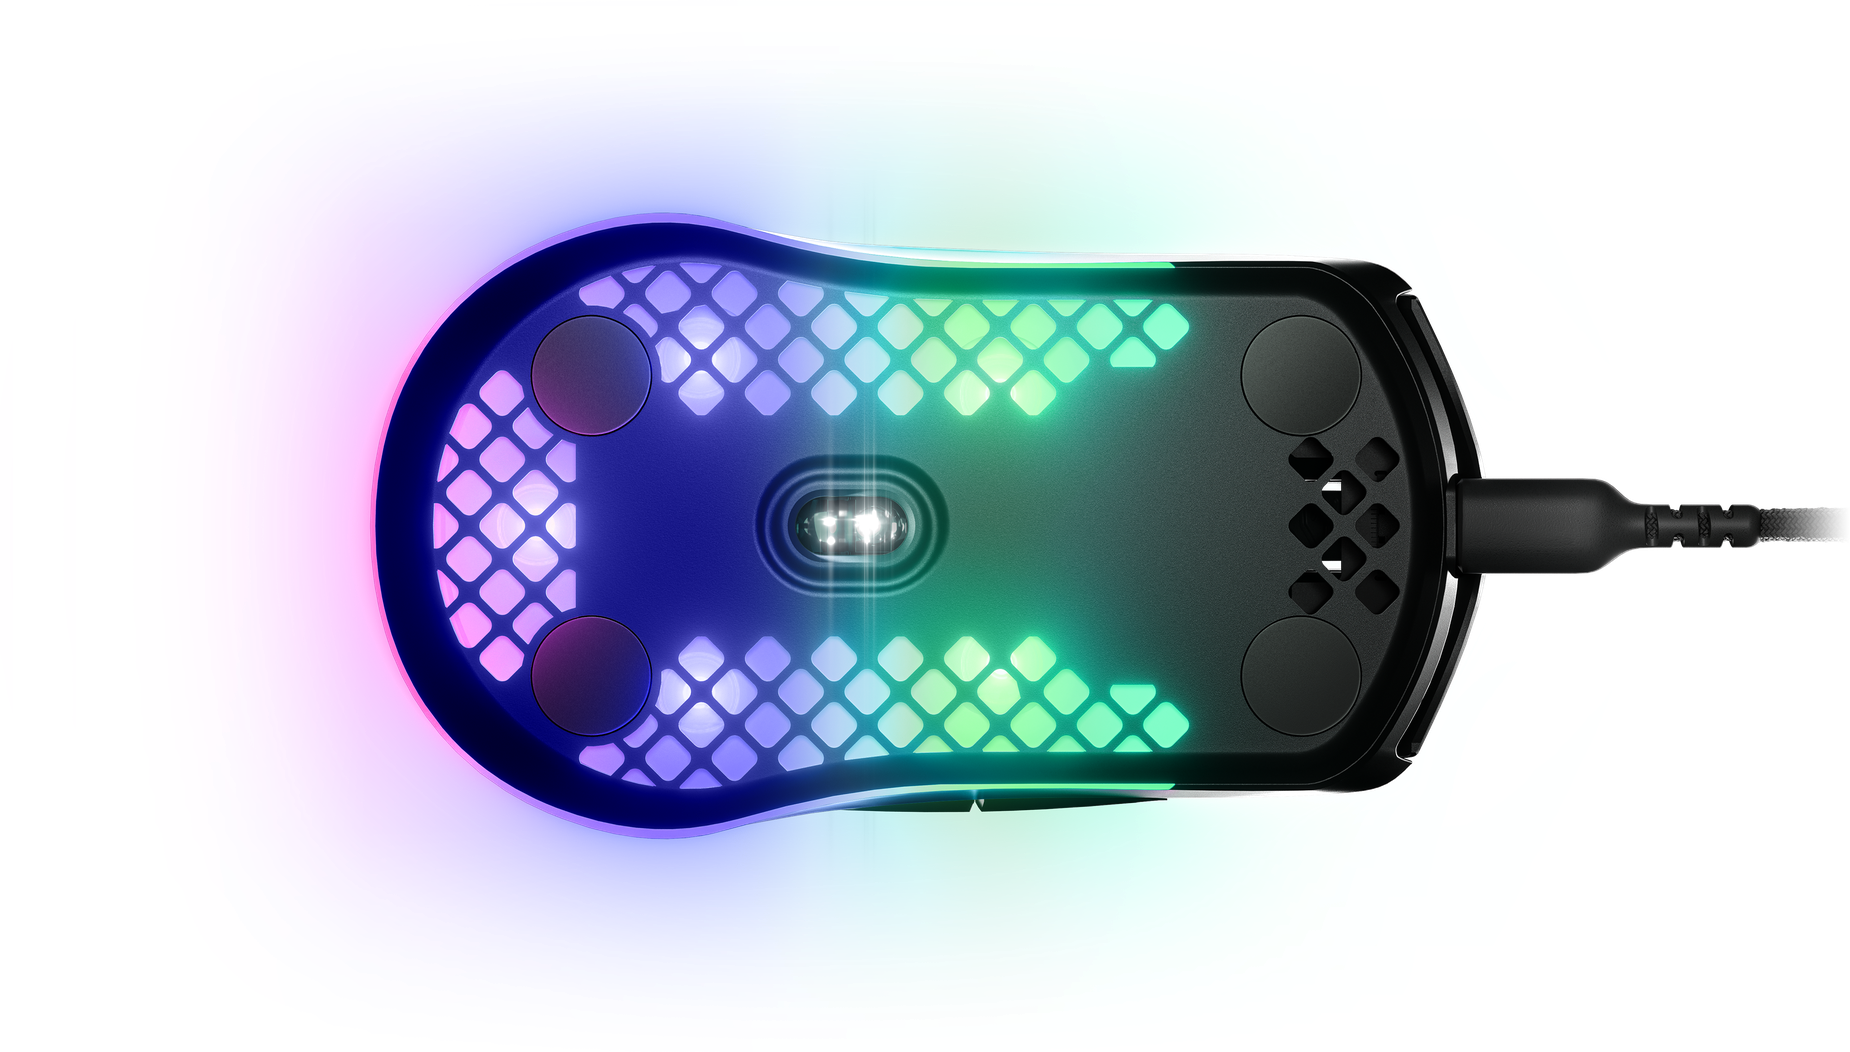 Aerox mouse viewed from the bottom to show the glide skates and sensors.